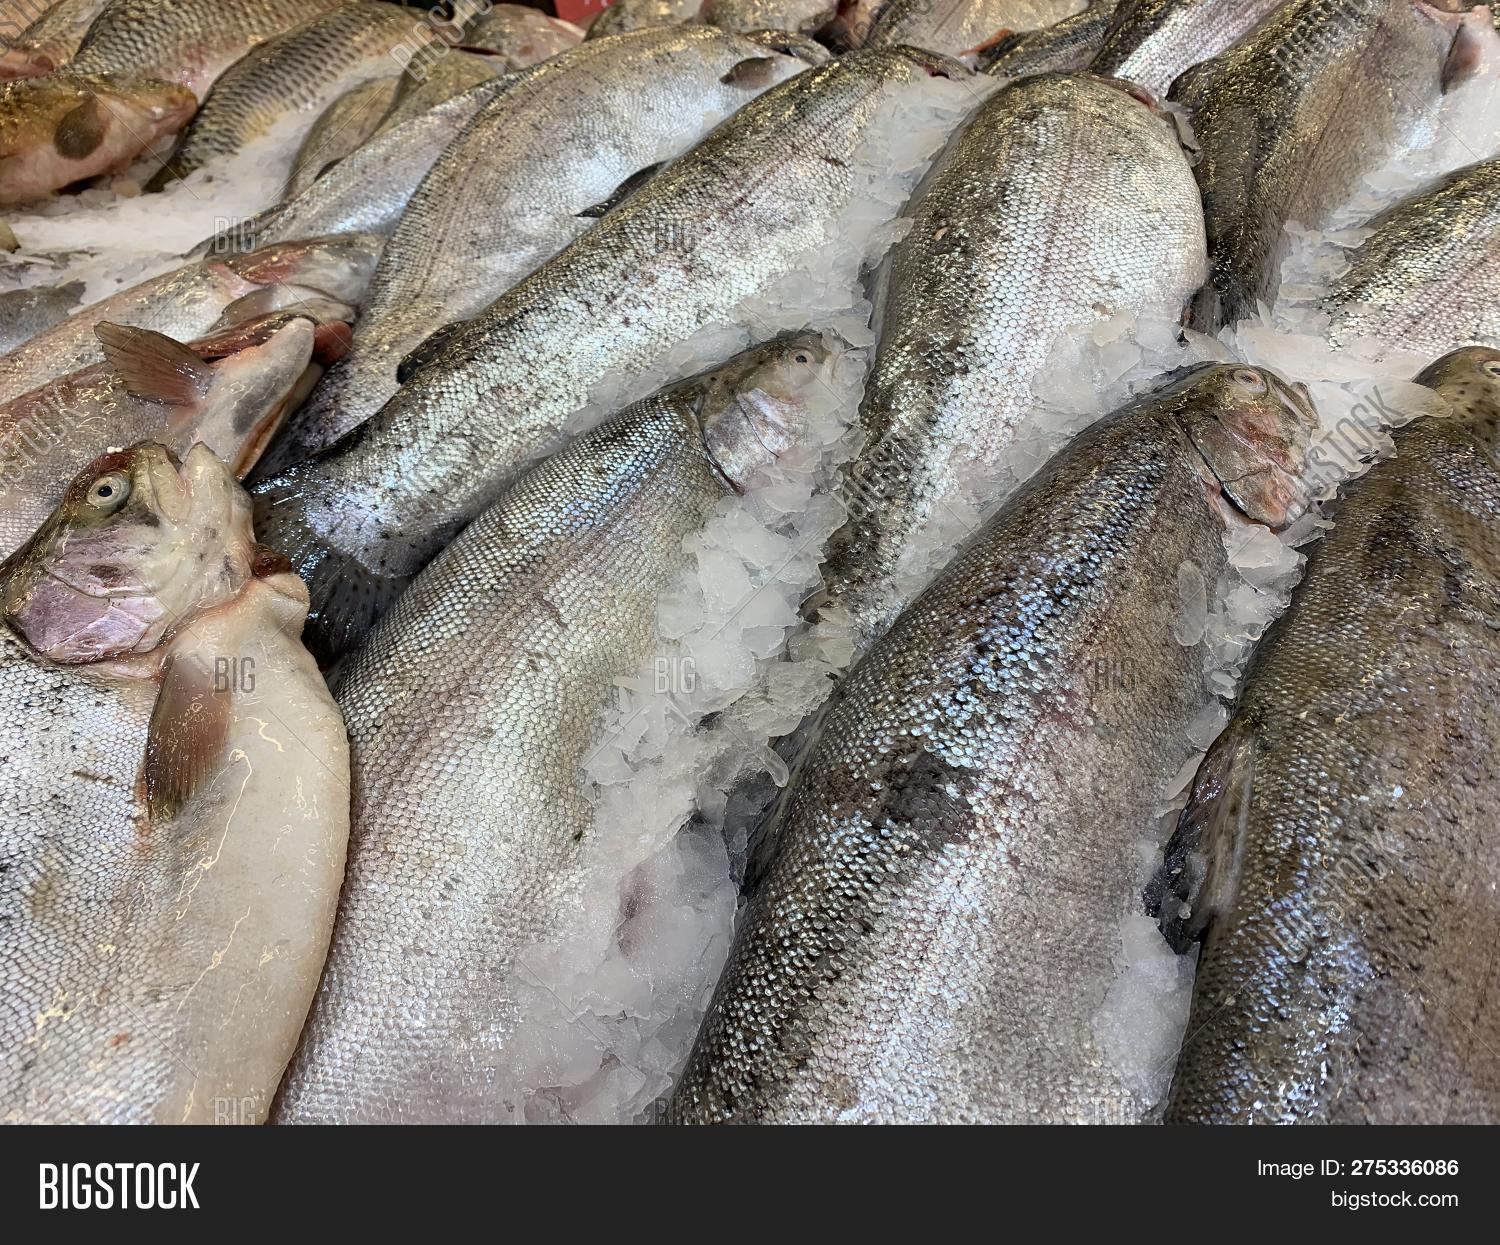 animal,background,catch,closeup,cold,cooking,cuisine,dead,delicious,diet,dinner,eat,eating,fillet,fish,fishing,food,fresh,freshness,frozen,gourmet,health,healthy,ice,industry,ingredient,marine,market,meal,meat,mediterranean,nutrition,ocean,raw,red,restaurant,sale,salmon,saltwater,sea,seafood,selling,shop,store,supermarket,tasty,uncooked,white